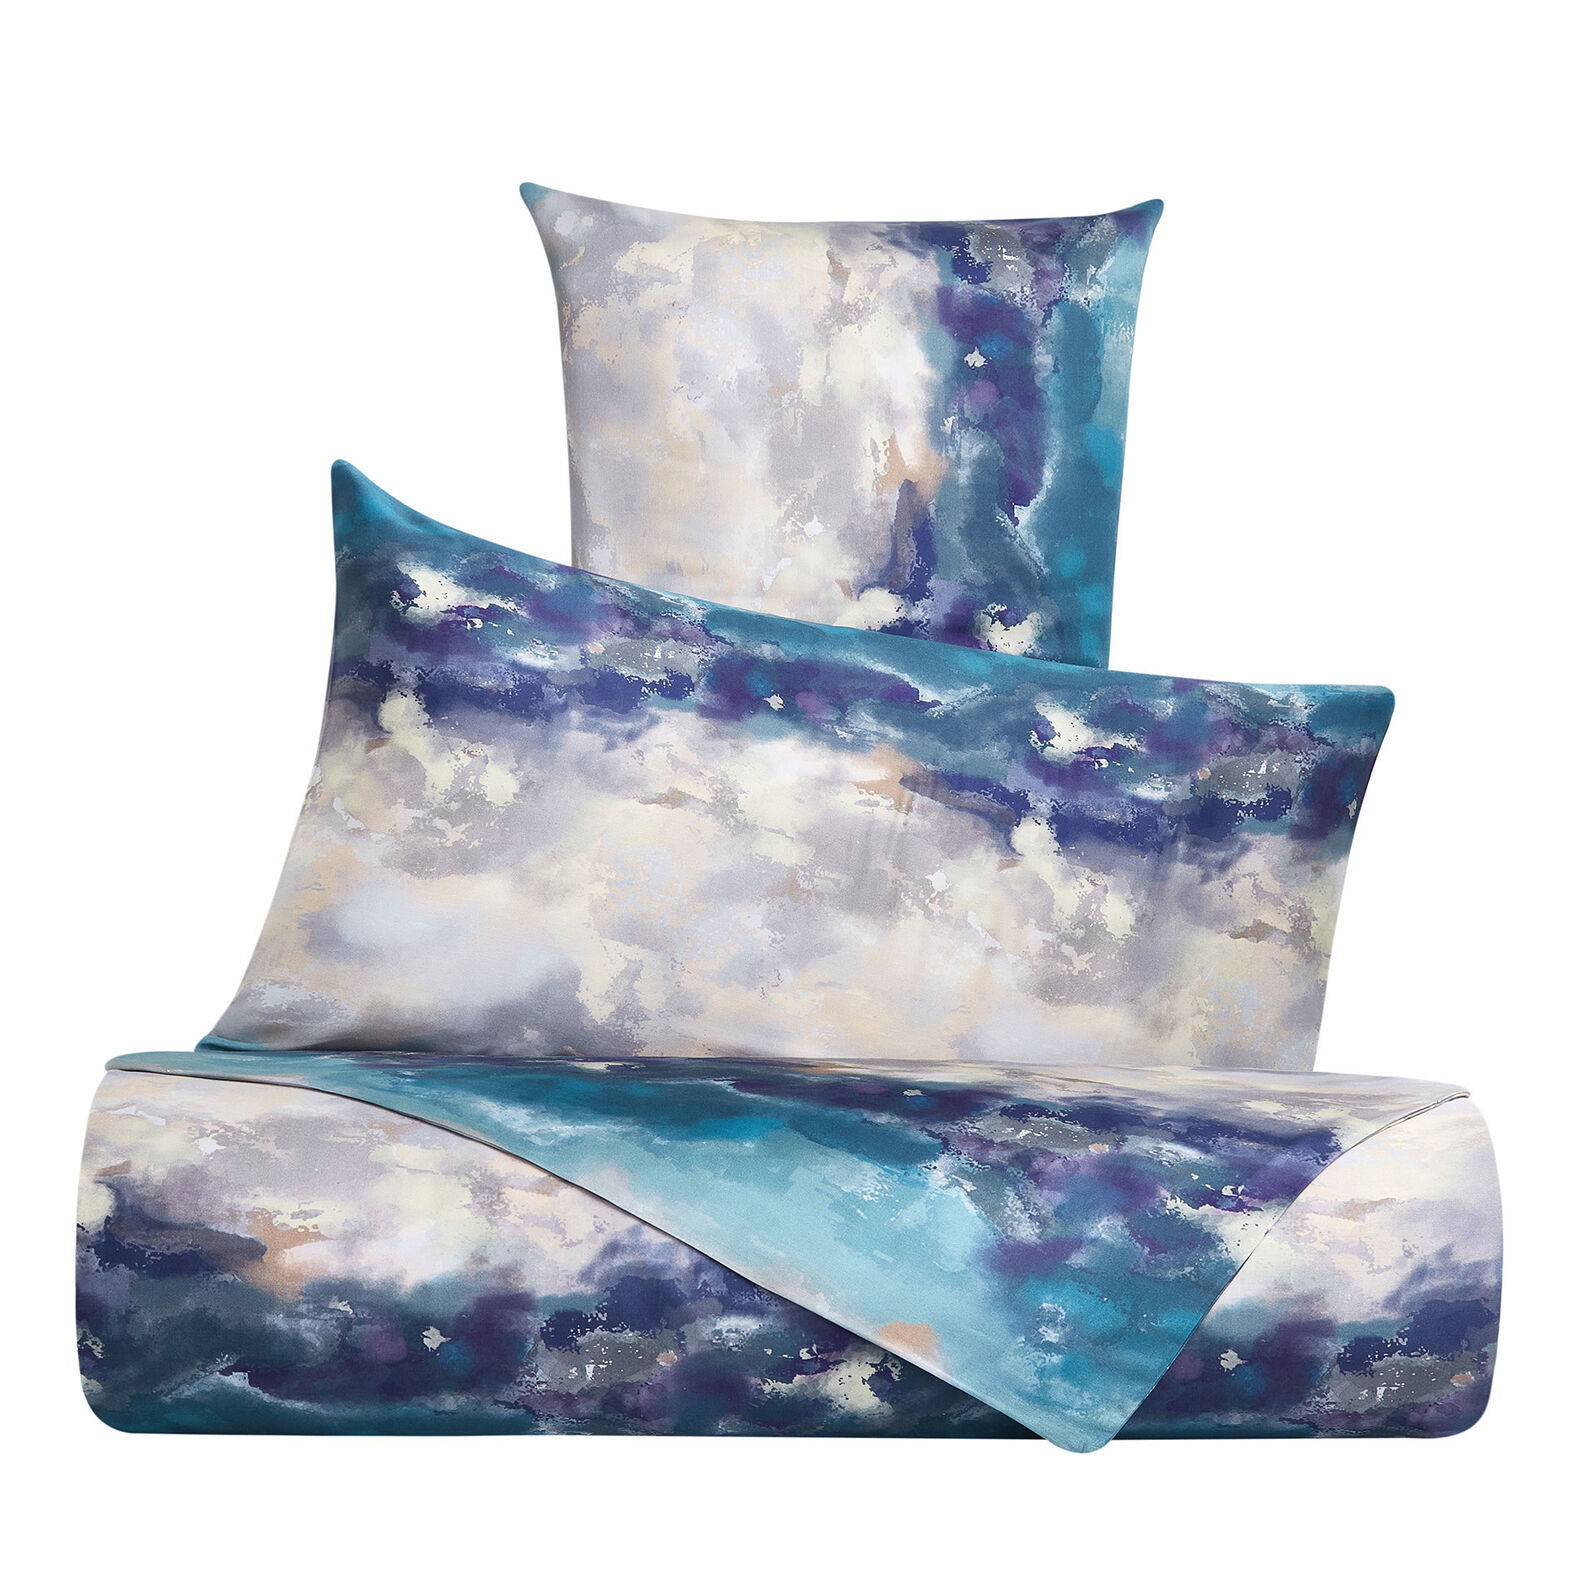 Cotton satin bed sheet set with watercolour pattern